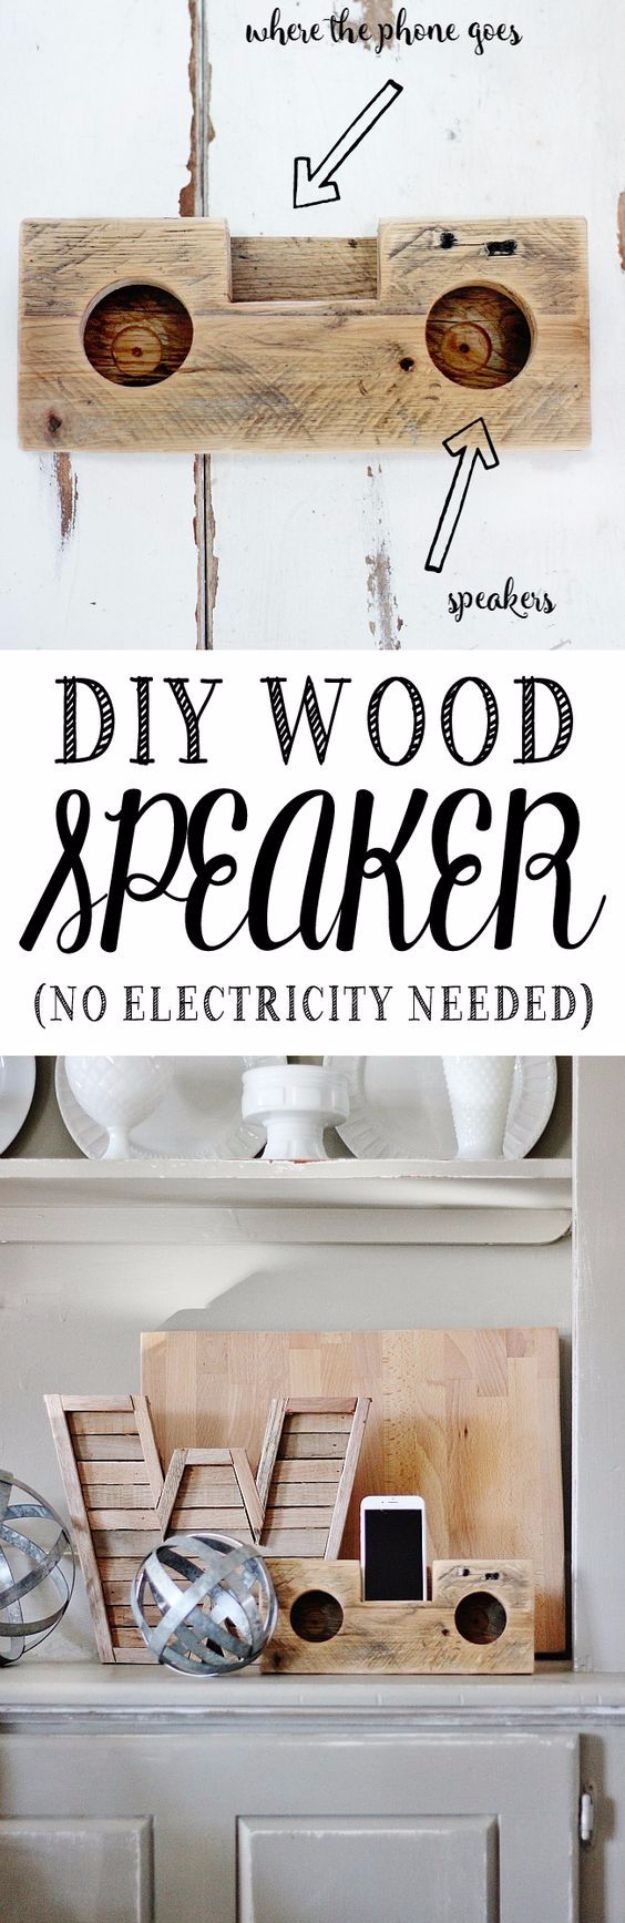 35 cool diy gadgets you can make to impress your friends diy gadgets diy wood speaker homemade gadget ideas and projects for men women solutioingenieria Image collections